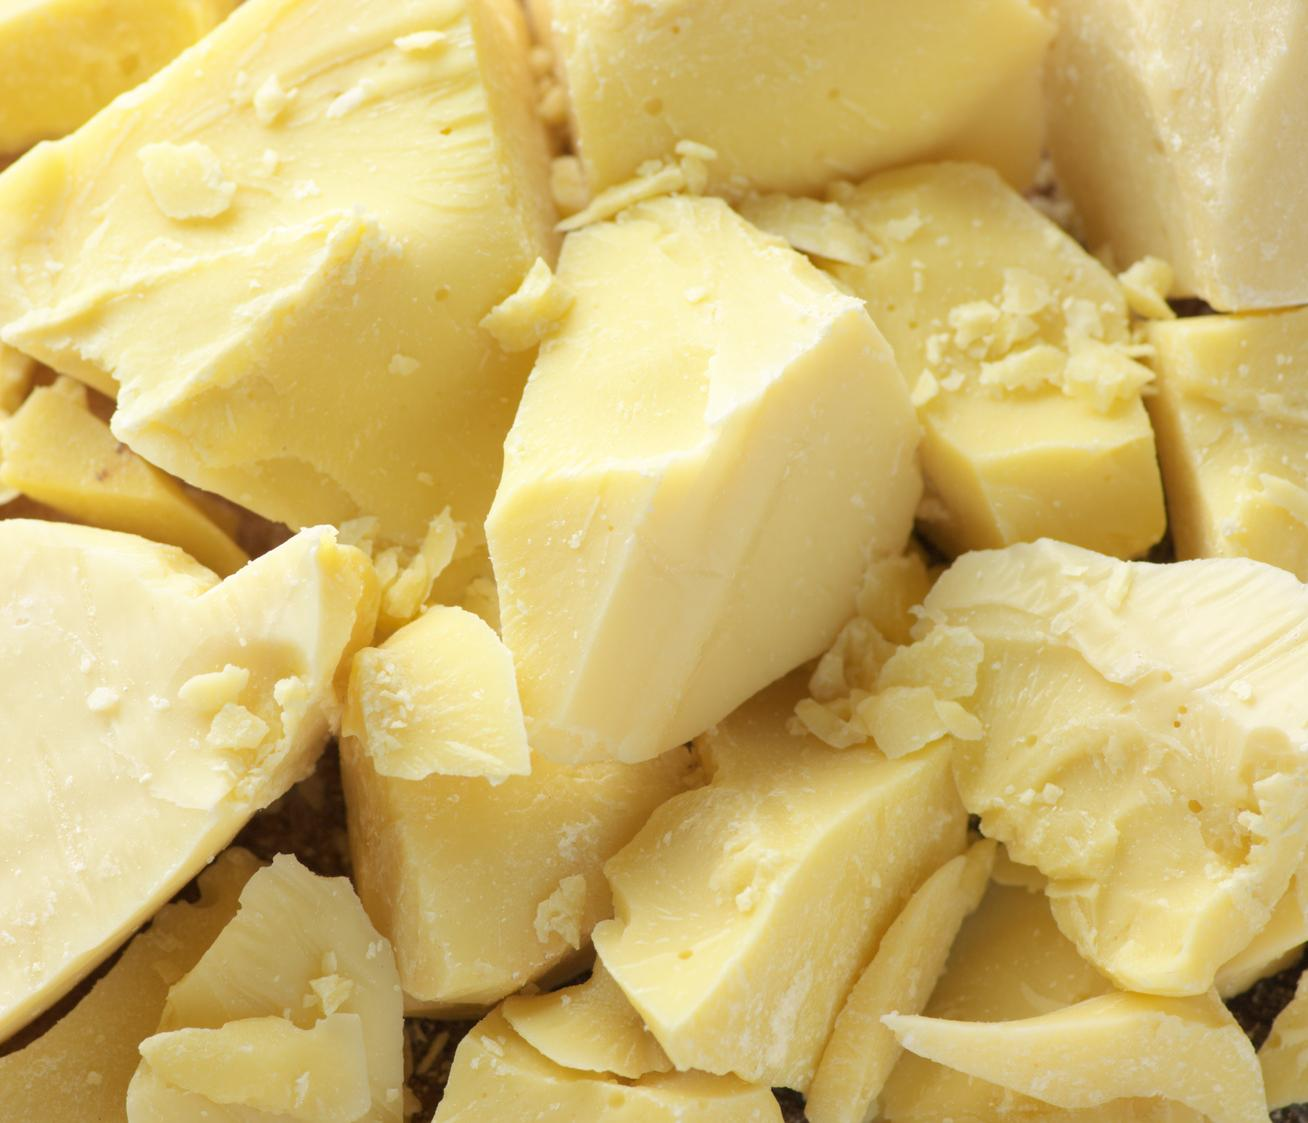 1308x1123 Shea Butter Wallpapers High Quality | Download Free